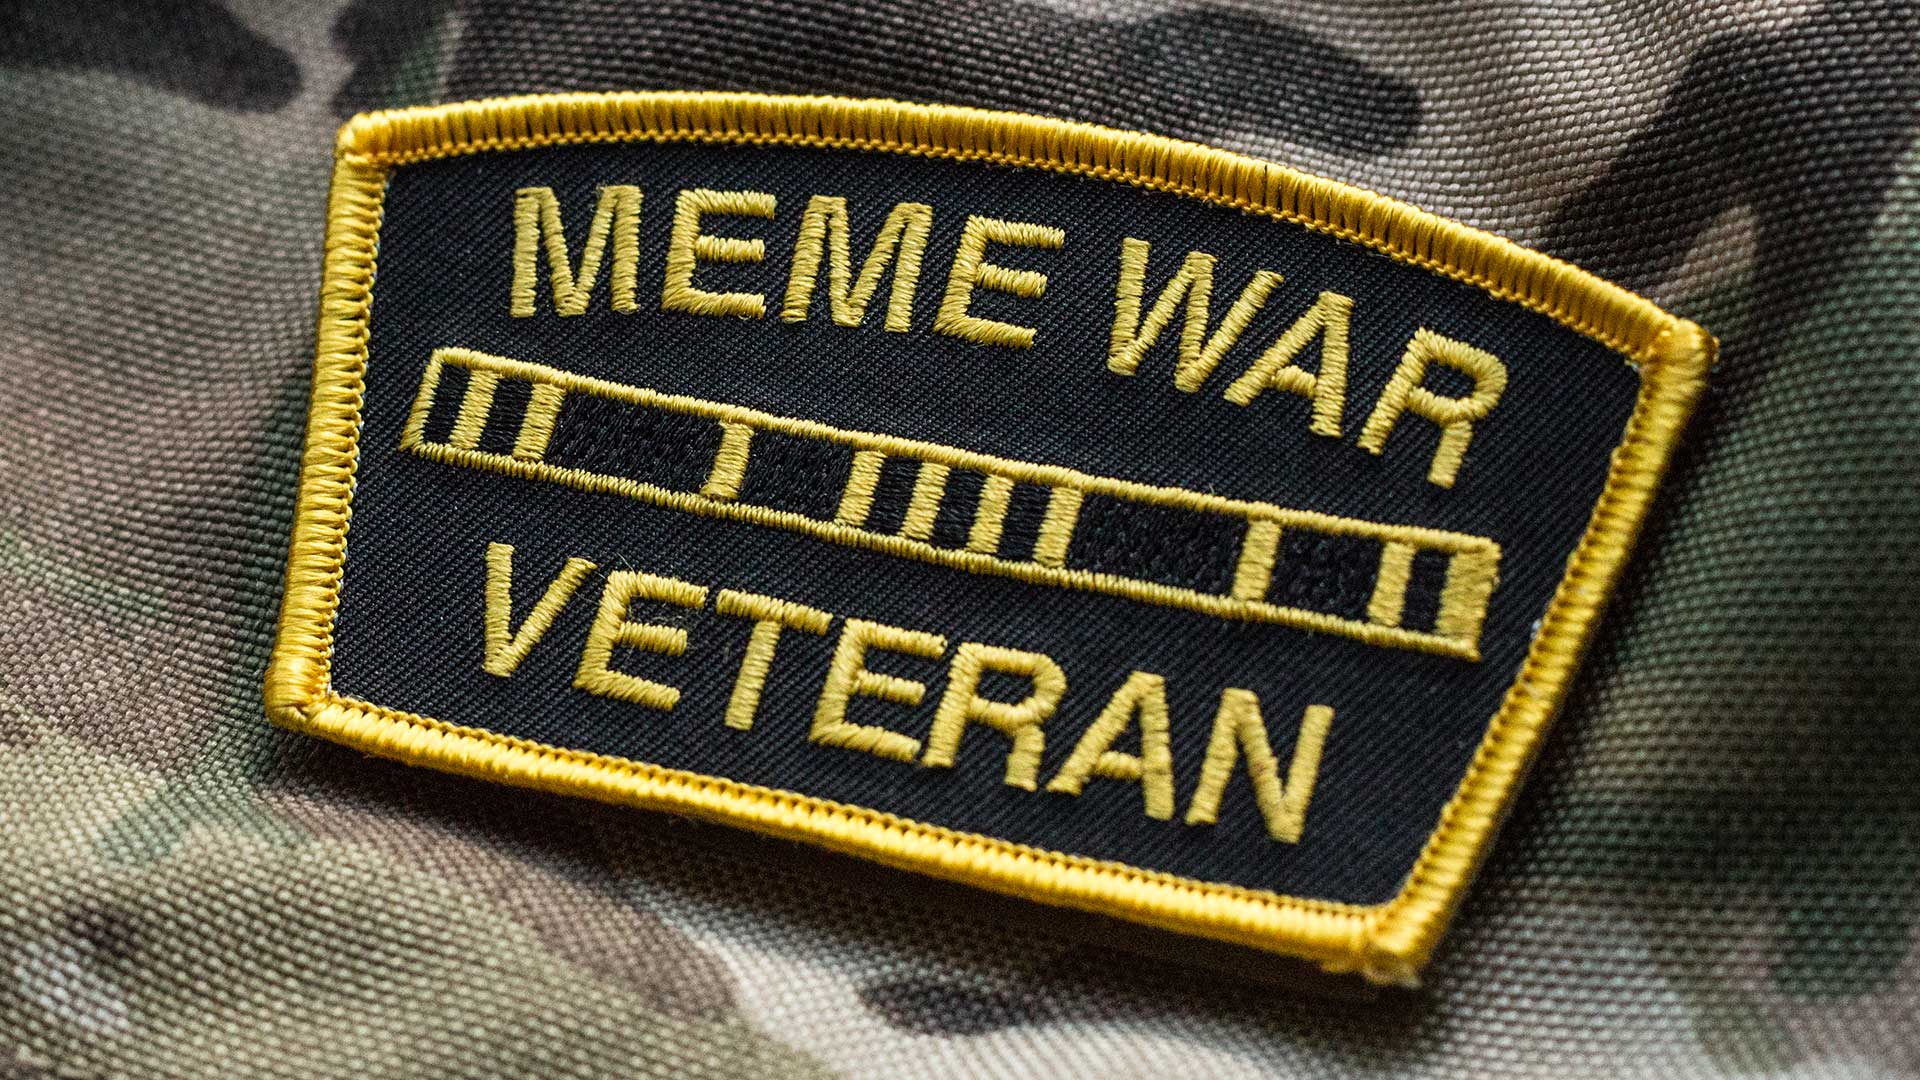 Meme War Veteran Morale Patch Detail 2